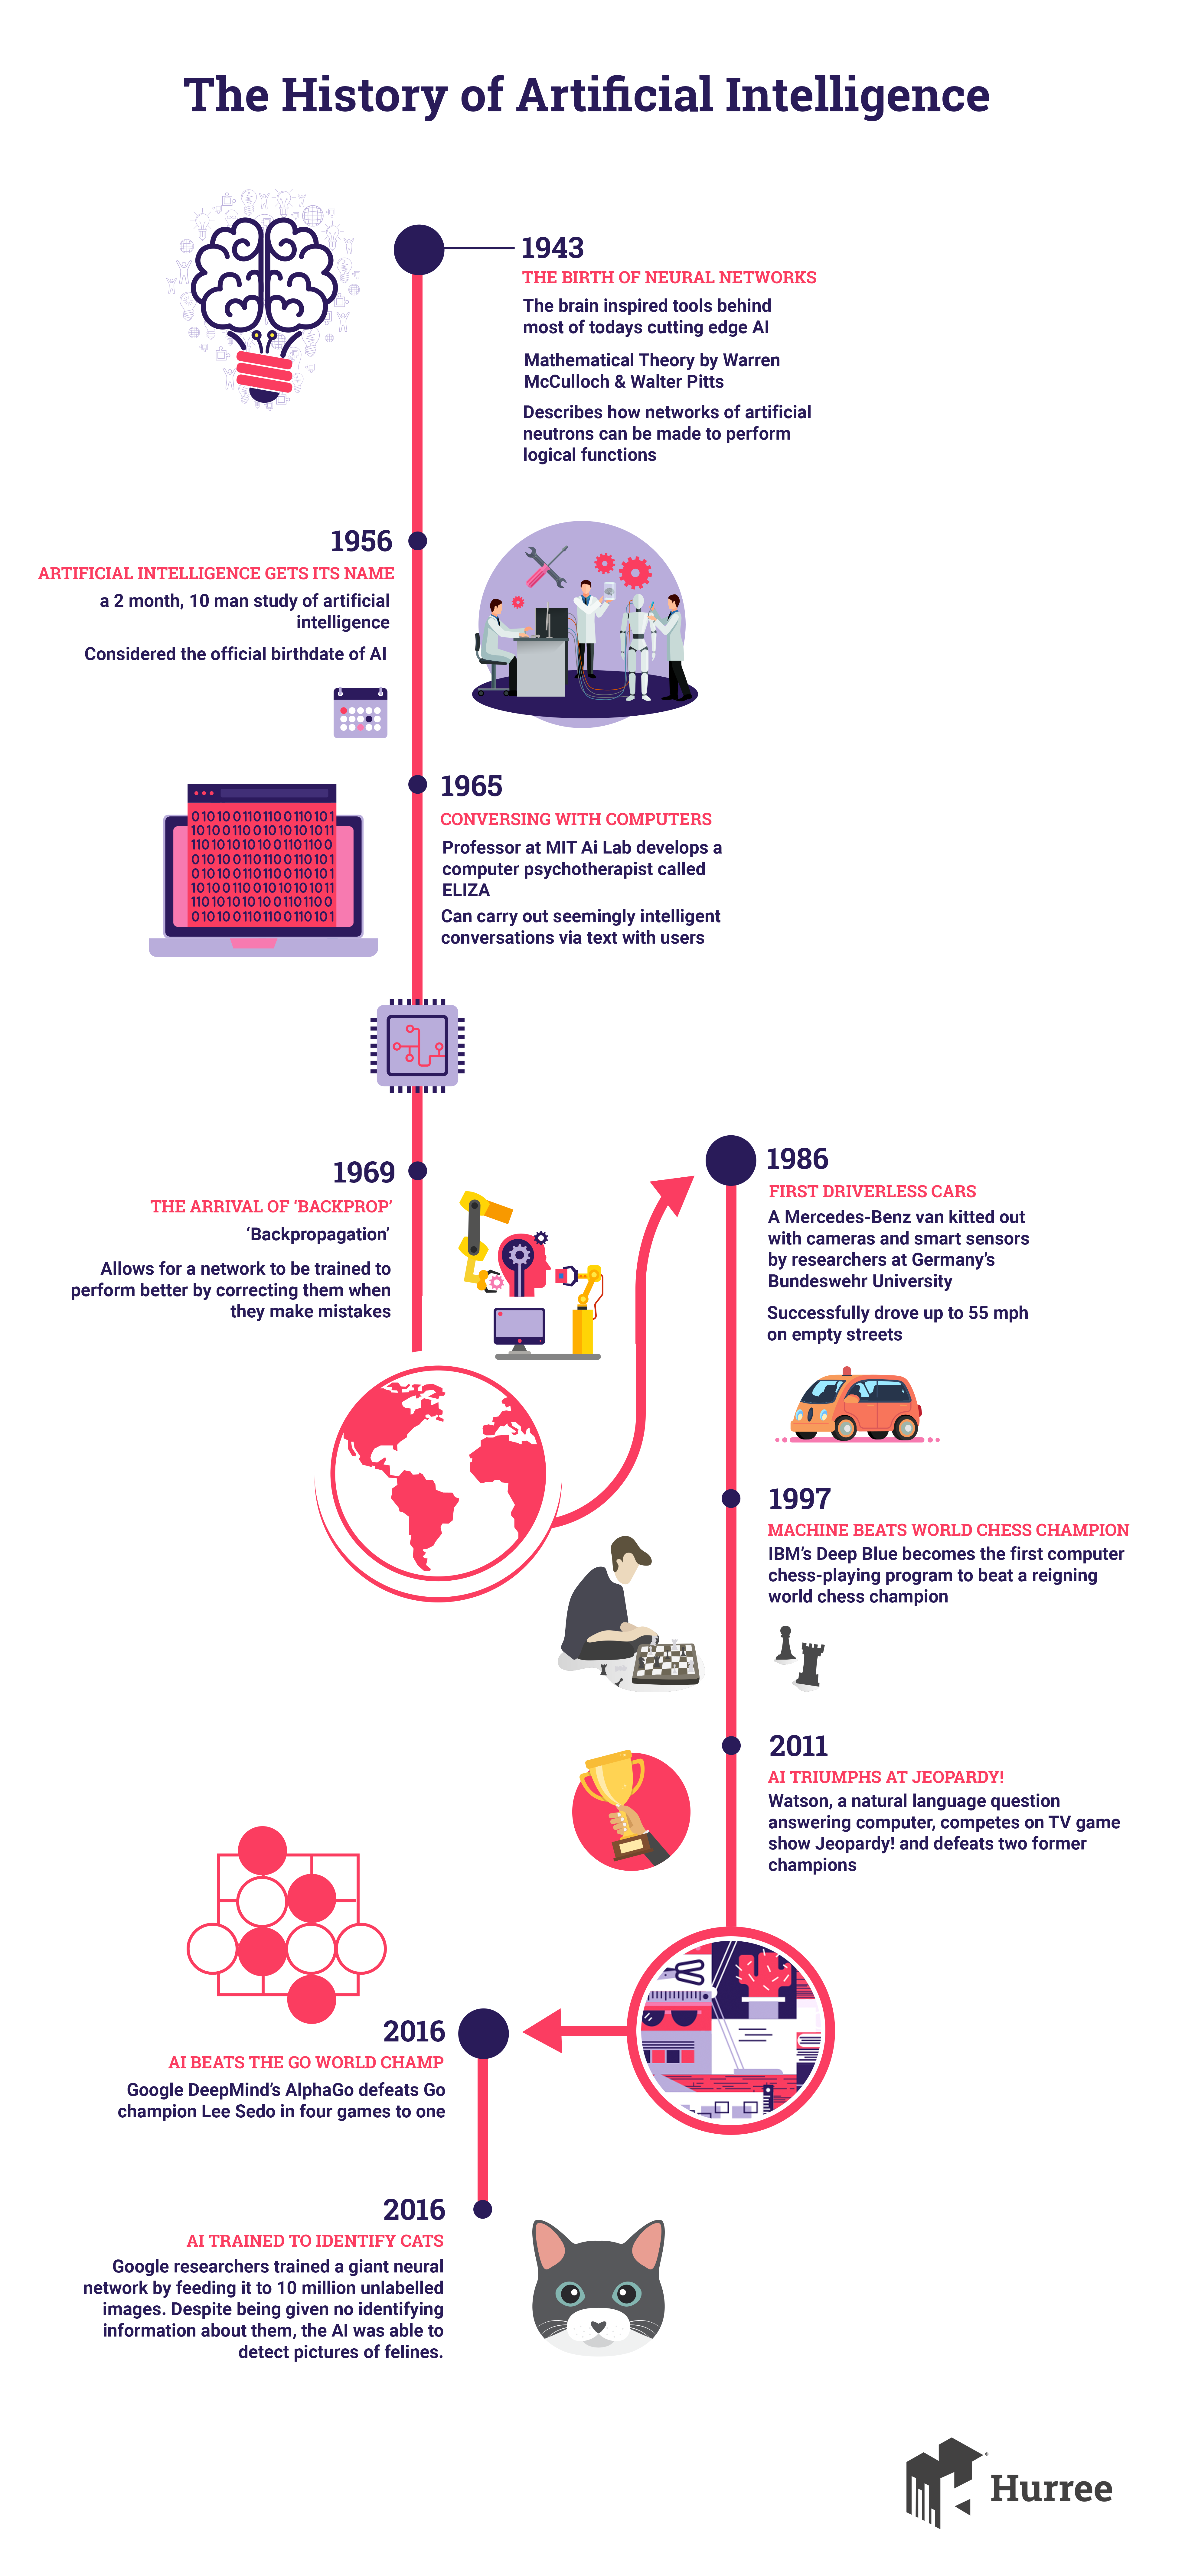 History of artificial intelligence infographic